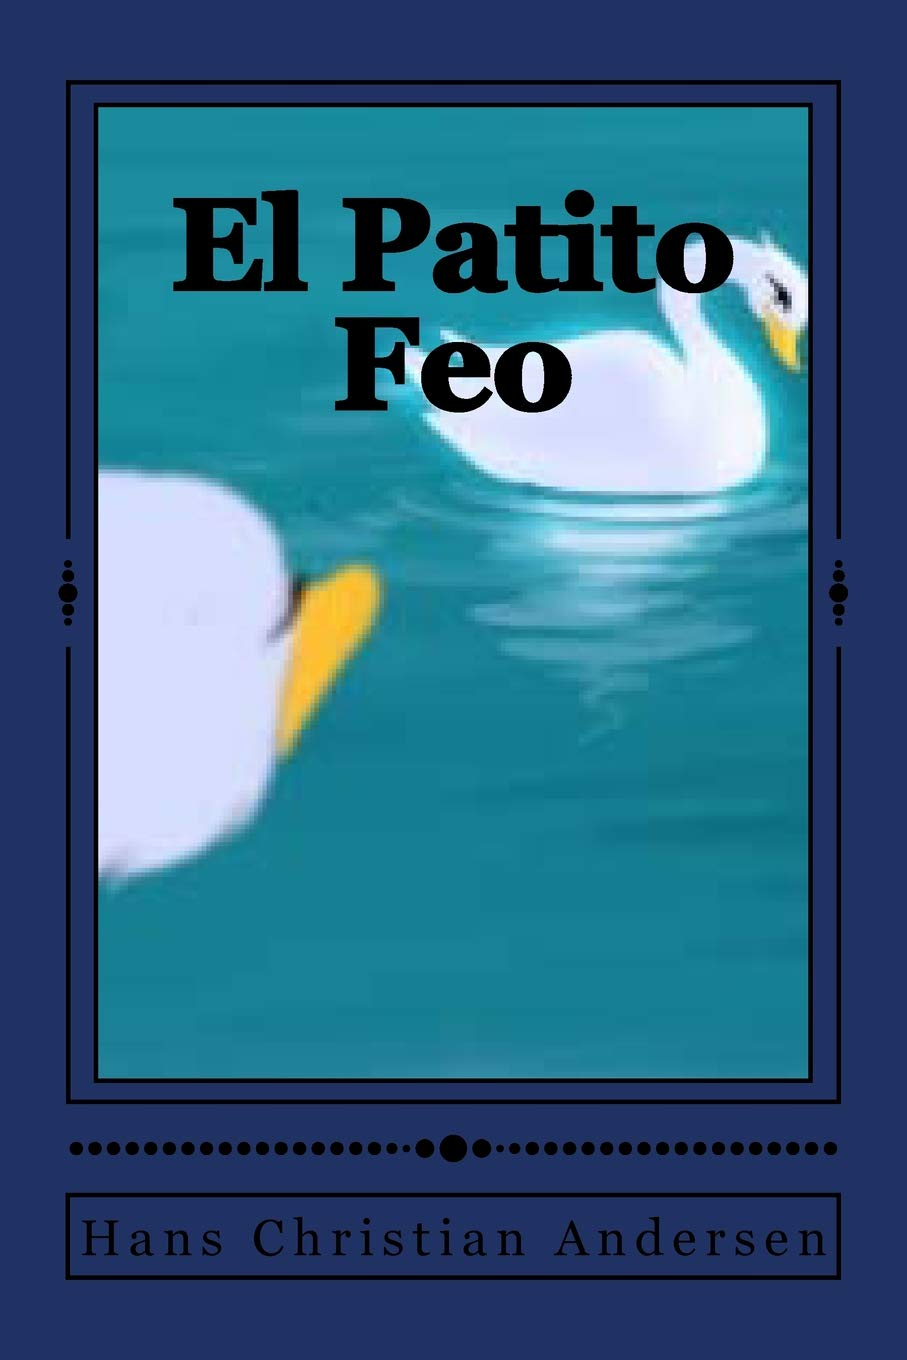 El Patito Feo Paperback – May 20, 2017